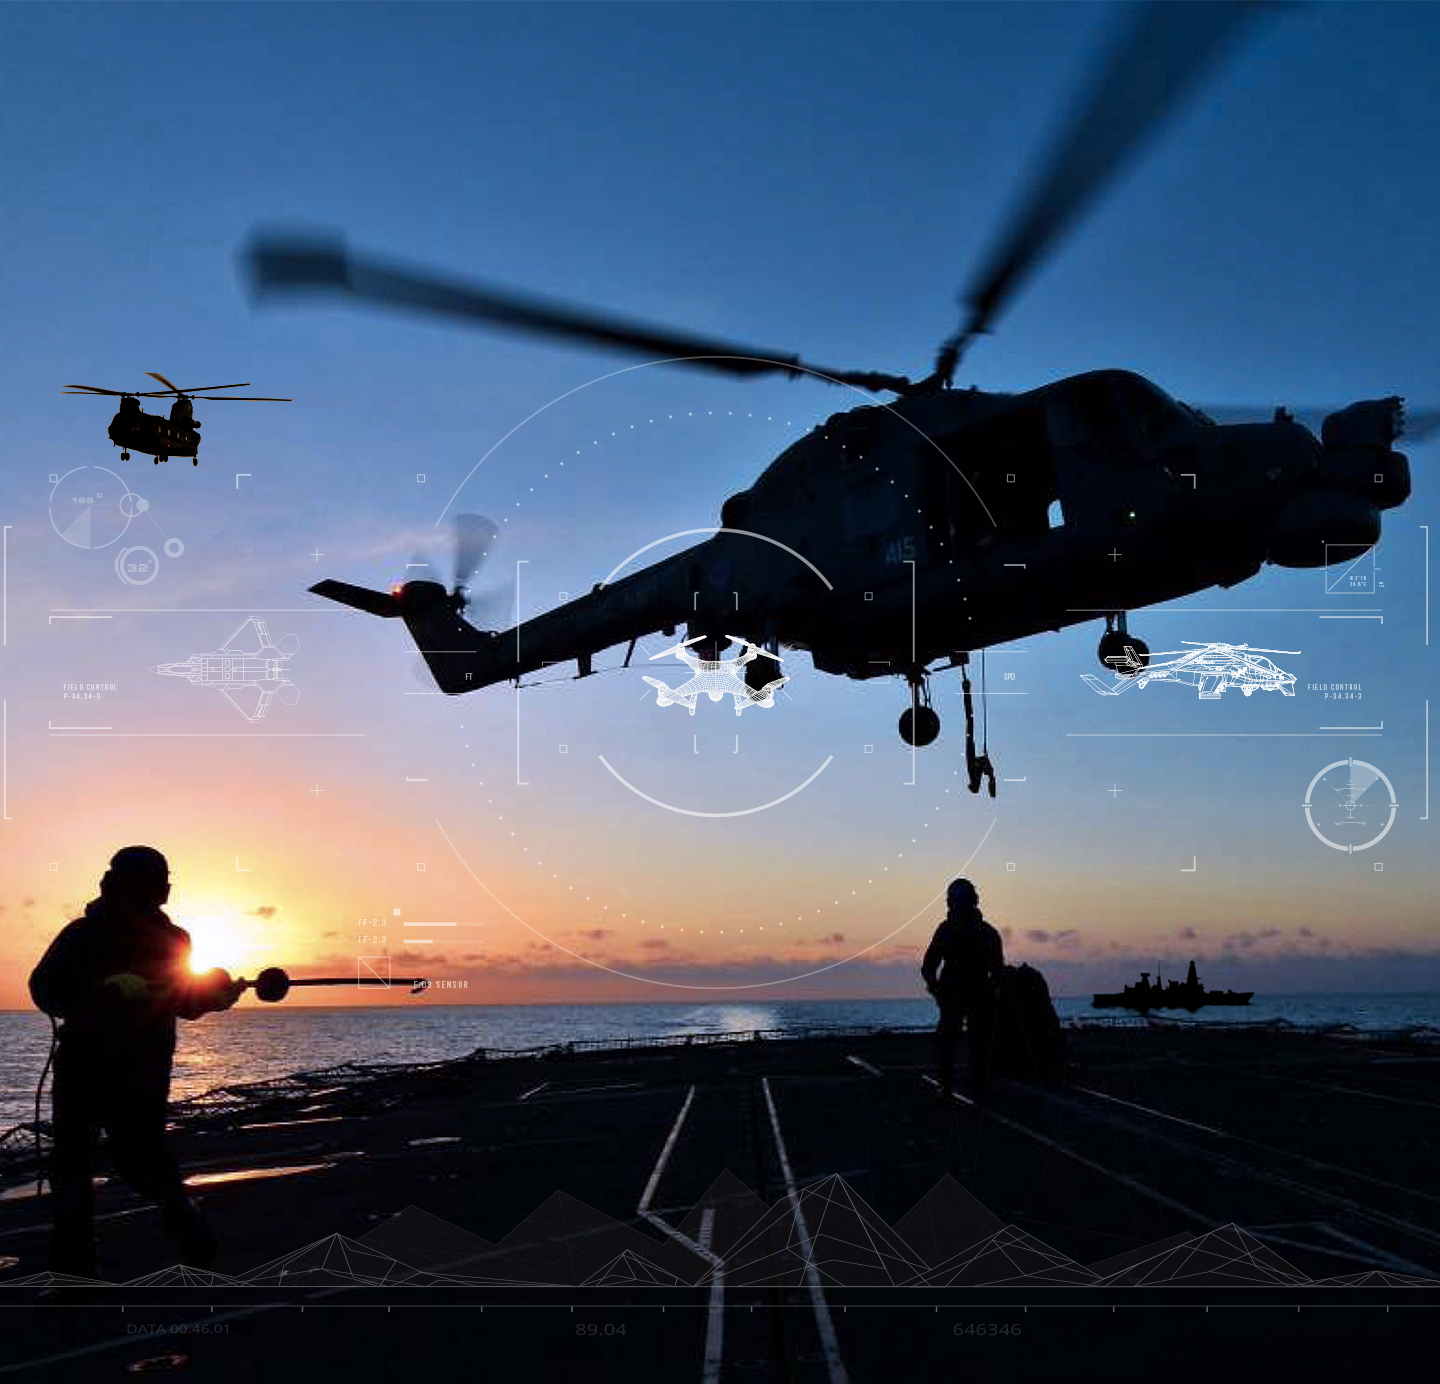 Helicopter landing on an aircraft carrier